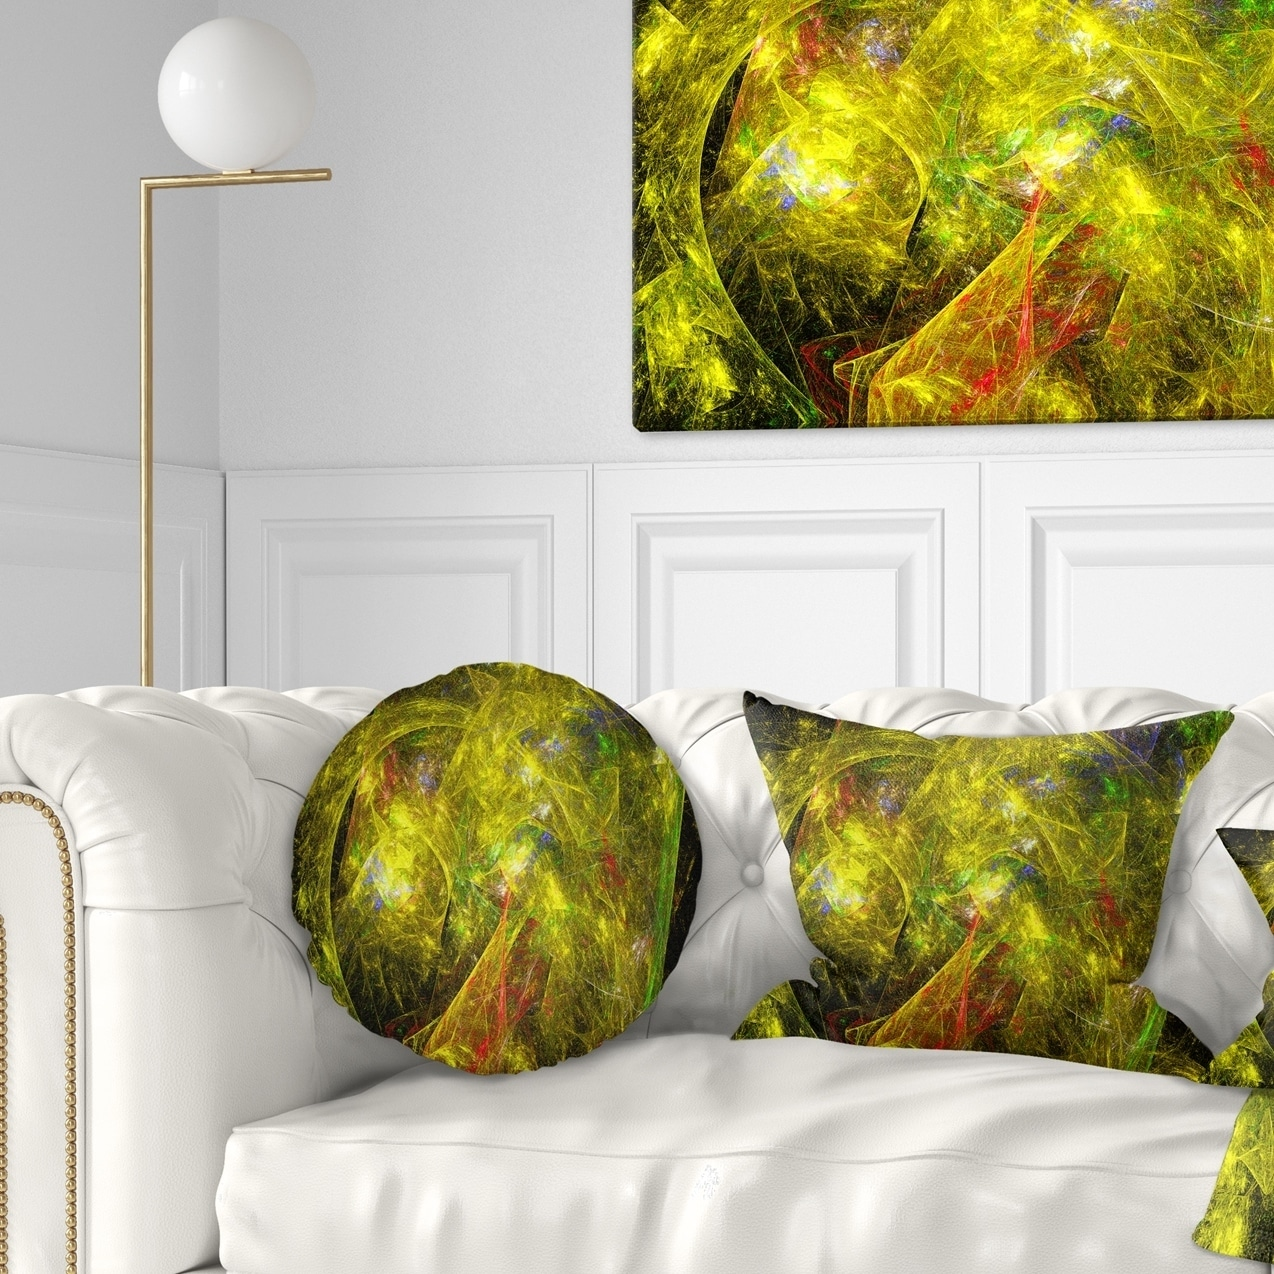 Design Art Designart Golden Mystic Psychedelic Texture Abstract Throw Pillow Walmart Com Walmart Com